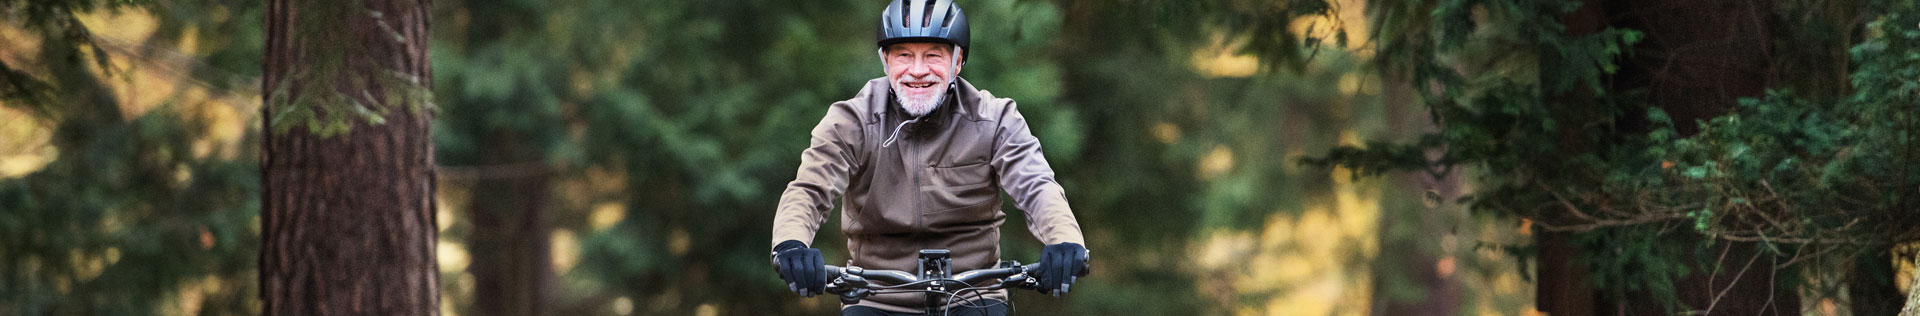 A senior man biking on a forested path in the fall